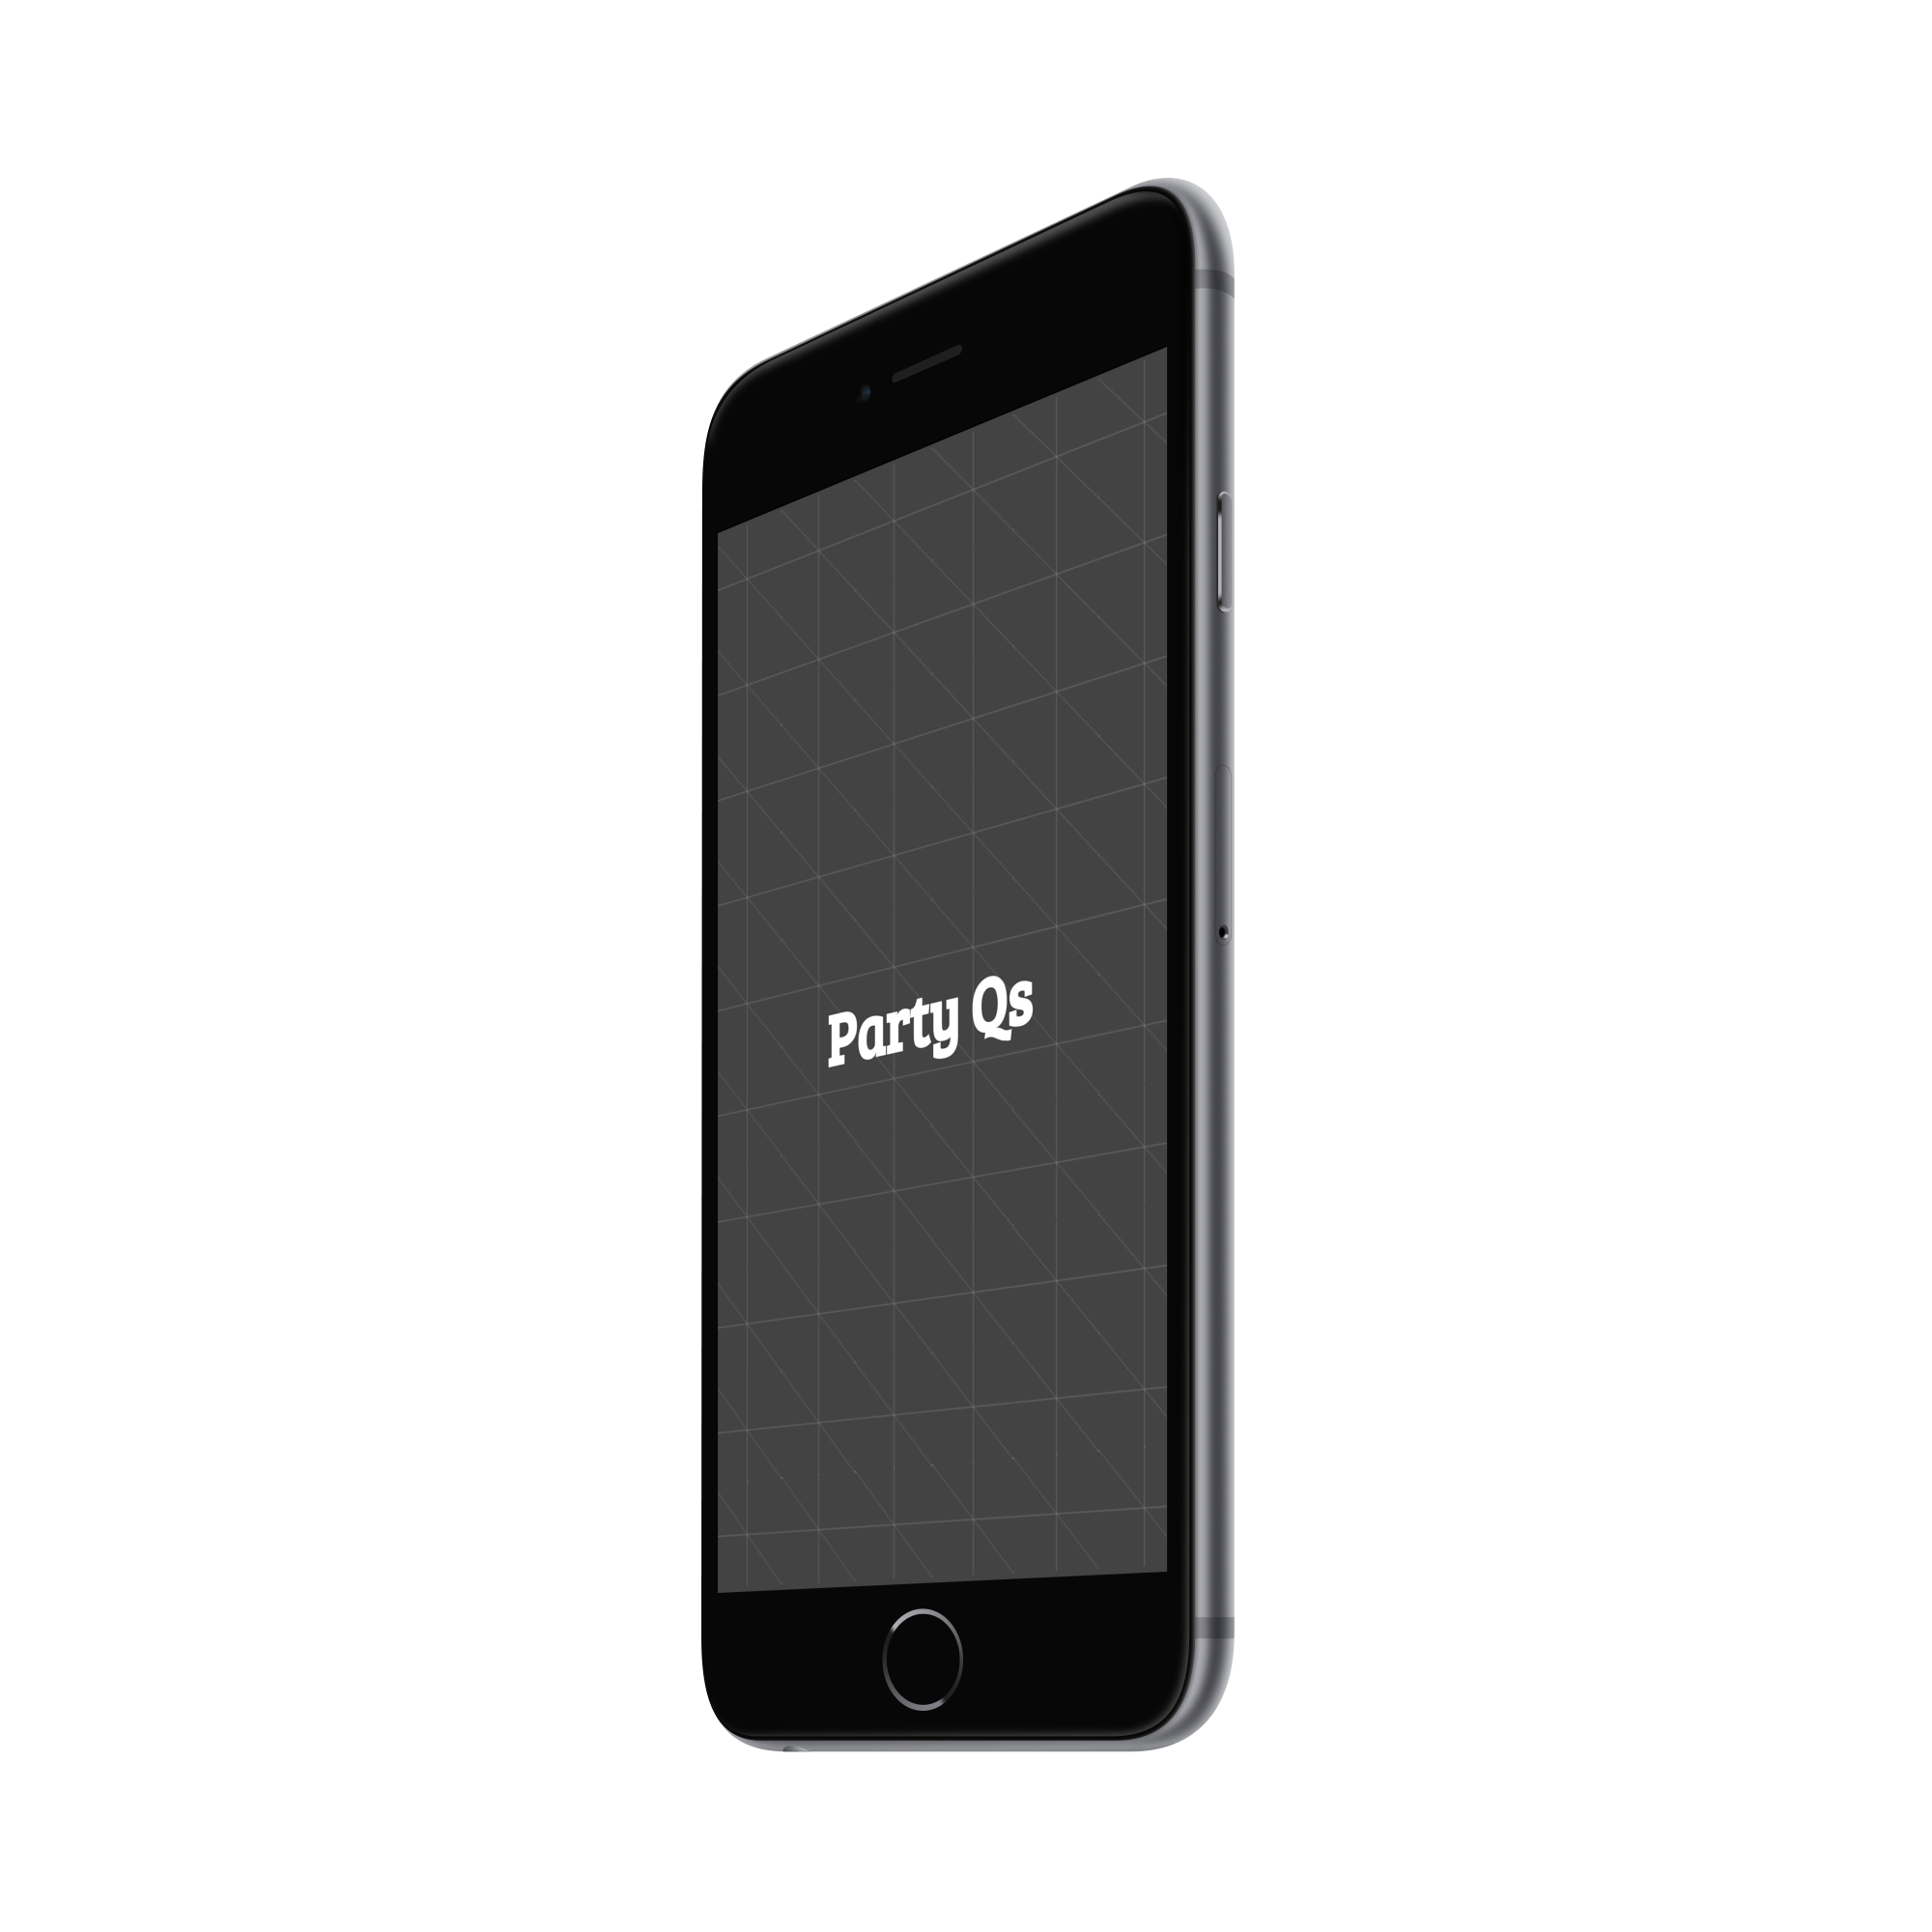 Party Qs Launch Screen_iphone6plus_spacegrey_side2.png